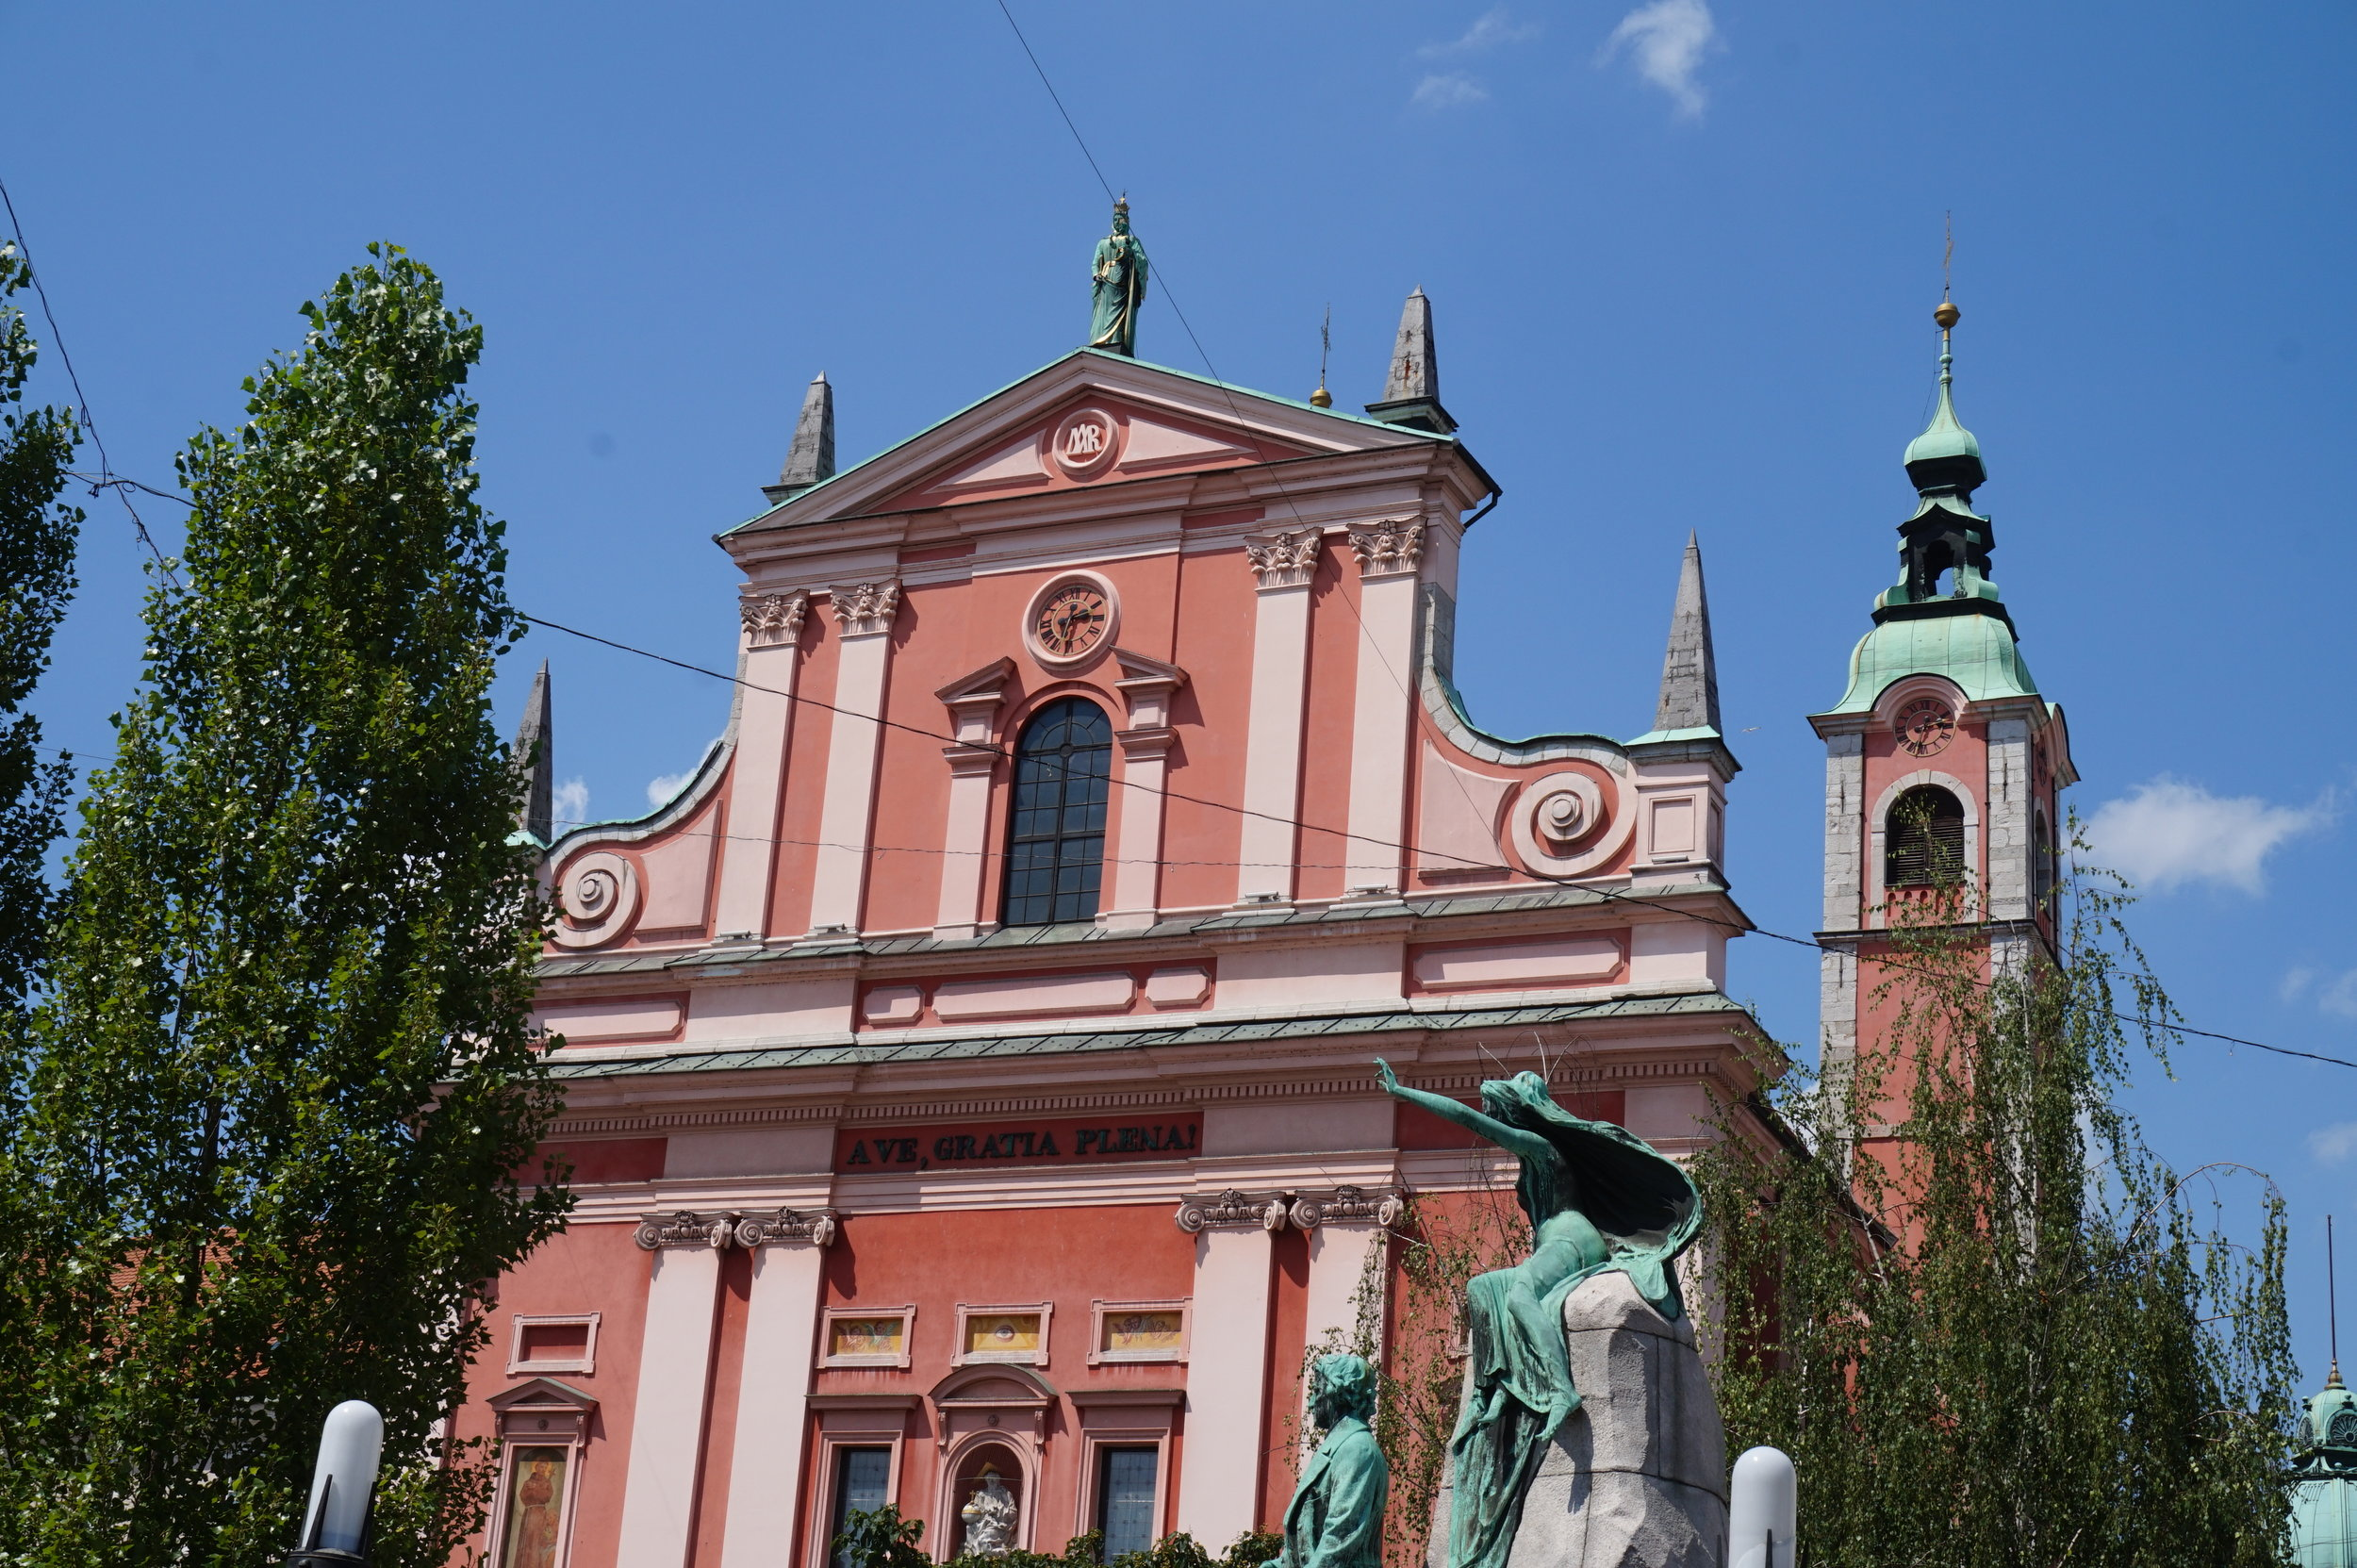 Ljubljana old town is one of the top attractions in Ljubljana and lovely to walk through